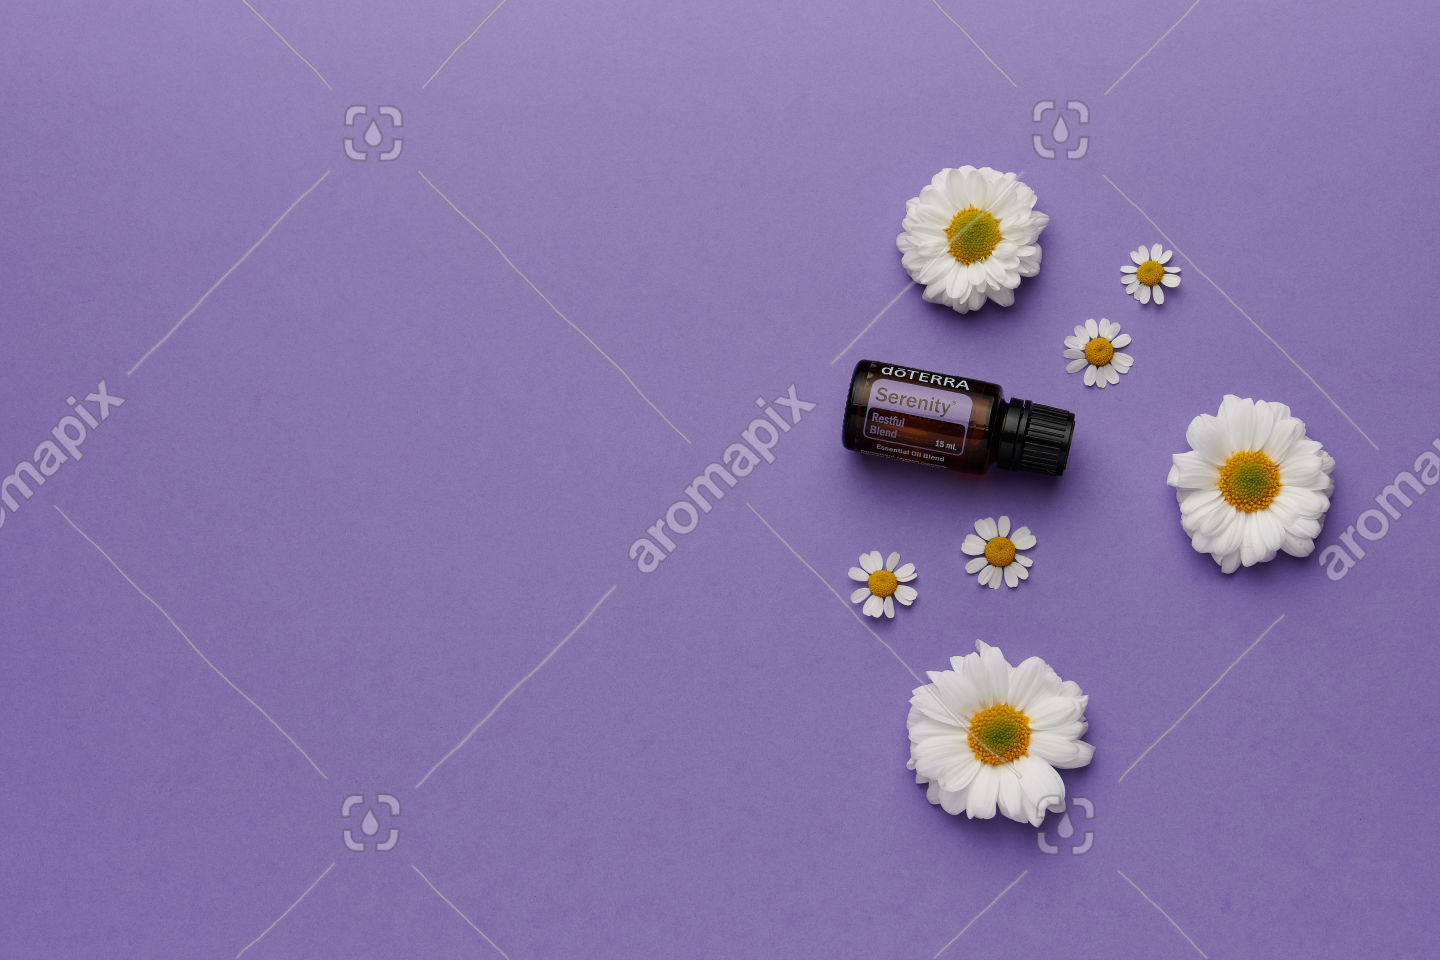 doTERRA Serenity with flowers on purple